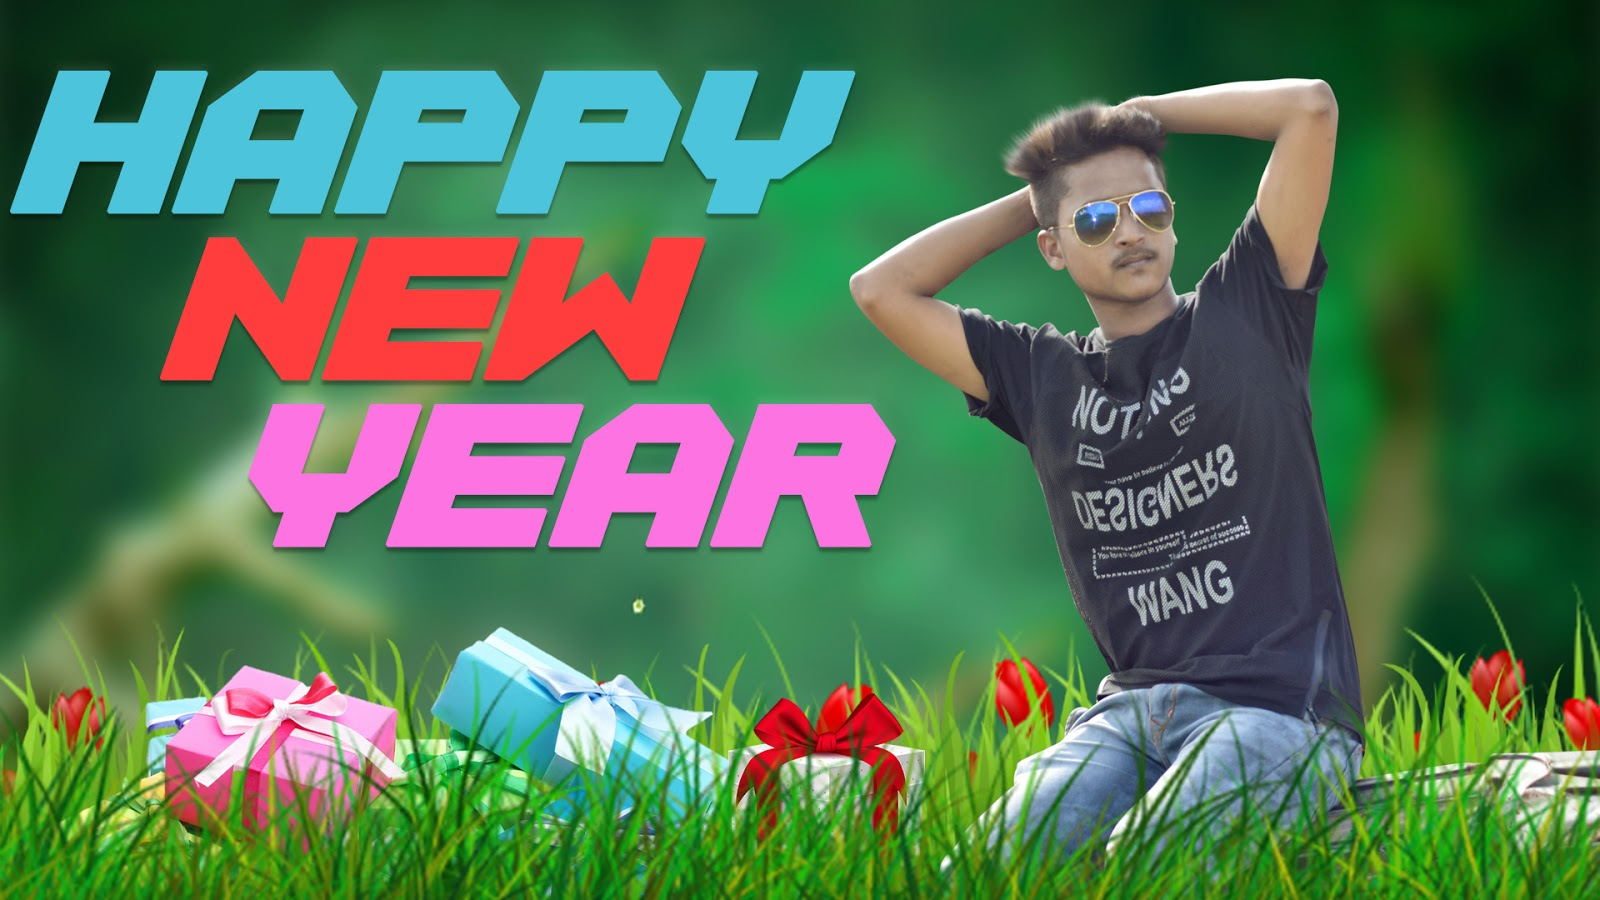 Happy new year 2018 new year special photo edits photoshop happy new year 2018 baditri Gallery